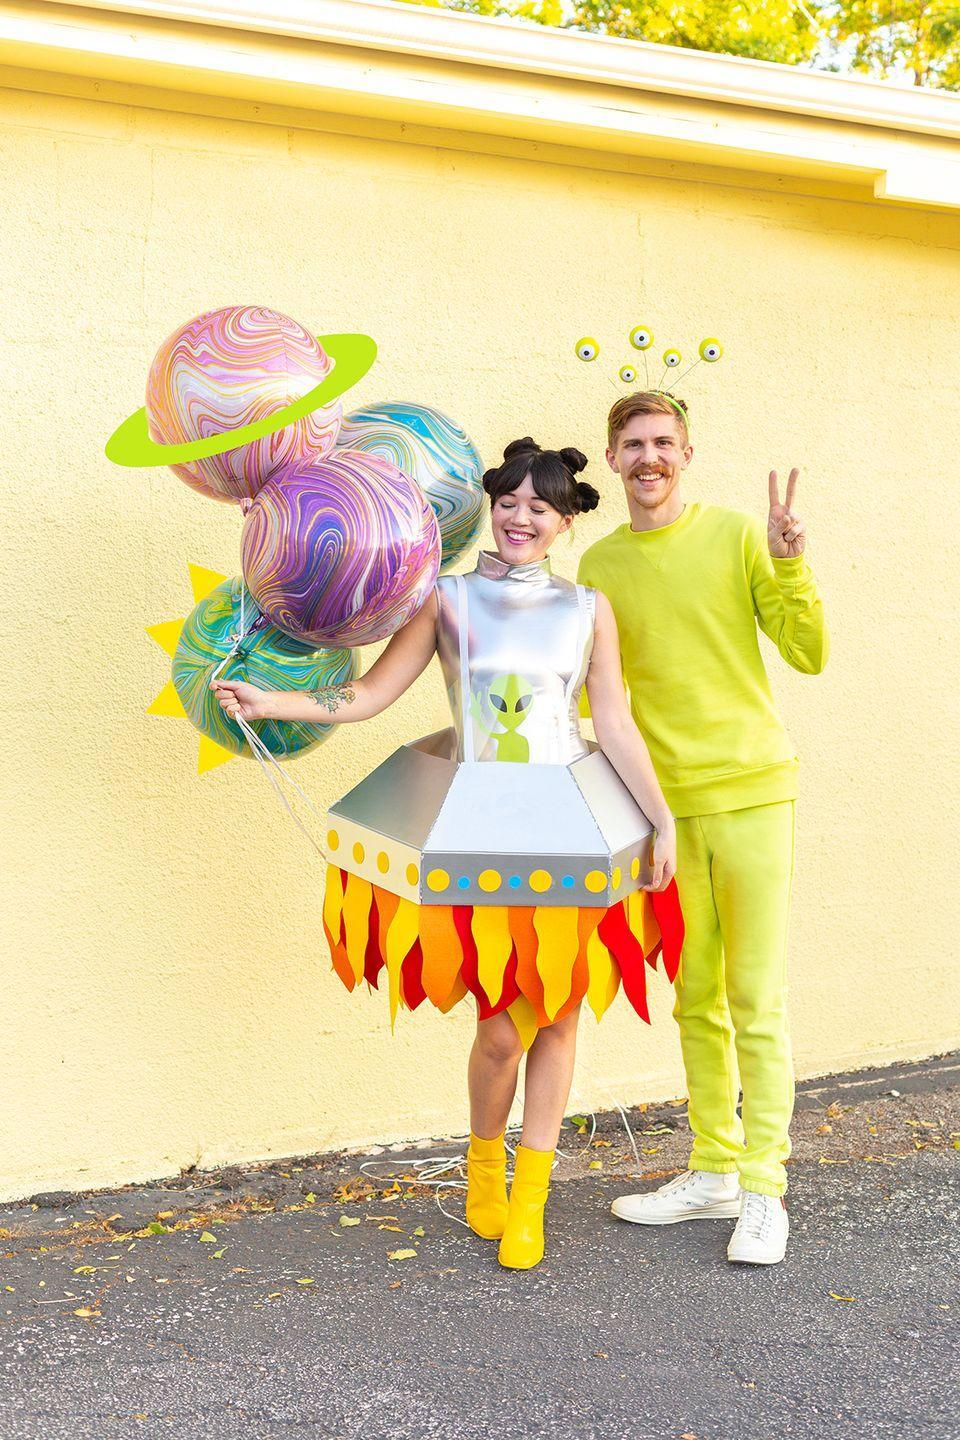 """<p>Since your partner captured (er. abducted) your heart and all, you might as well go for this alien-themed Halloween costume. Bring on the space buns and googly eyes. </p><p><a class=""""link rapid-noclick-resp"""" href=""""https://www.amazon.com/Wonderful-ltd-Inflatable-System%EF%BC%8CScience-Educational/dp/B07SQQ6QX3/?tag=syn-yahoo-20&ascsubtag=%5Bartid%7C10055.g.2625%5Bsrc%7Cyahoo-us"""" rel=""""nofollow noopener"""" target=""""_blank"""" data-ylk=""""slk:SHOP PLANET INFLATABLES"""">SHOP PLANET INFLATABLES</a></p><p><em><a href=""""http://www.awwsam.com/2019/10/ufo-and-alien-couples-costume.html"""" rel=""""nofollow noopener"""" target=""""_blank"""" data-ylk=""""slk:Get the tutorial at Aww Sam »"""" class=""""link rapid-noclick-resp"""">Get the tutorial at Aww Sam »</a></em></p>"""